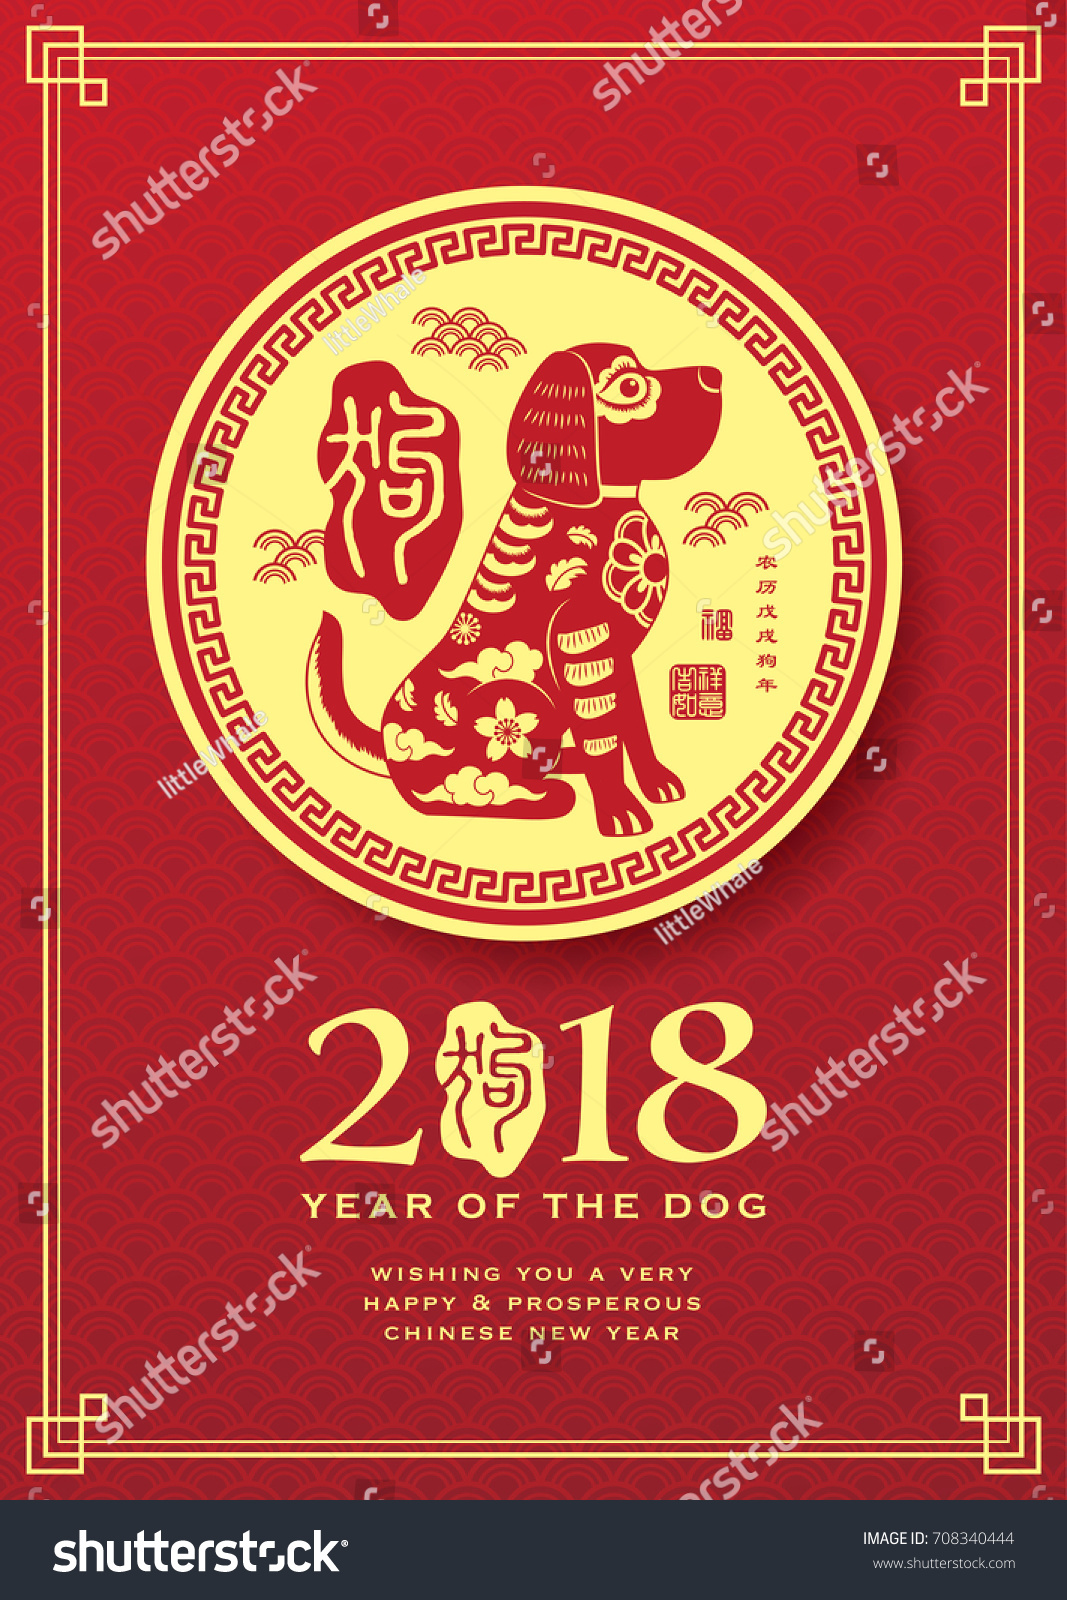 2018 chinese new year greeting card stock vector 708340444 2018 chinese new year greeting card red seal chinese wording dog right side kristyandbryce Choice Image